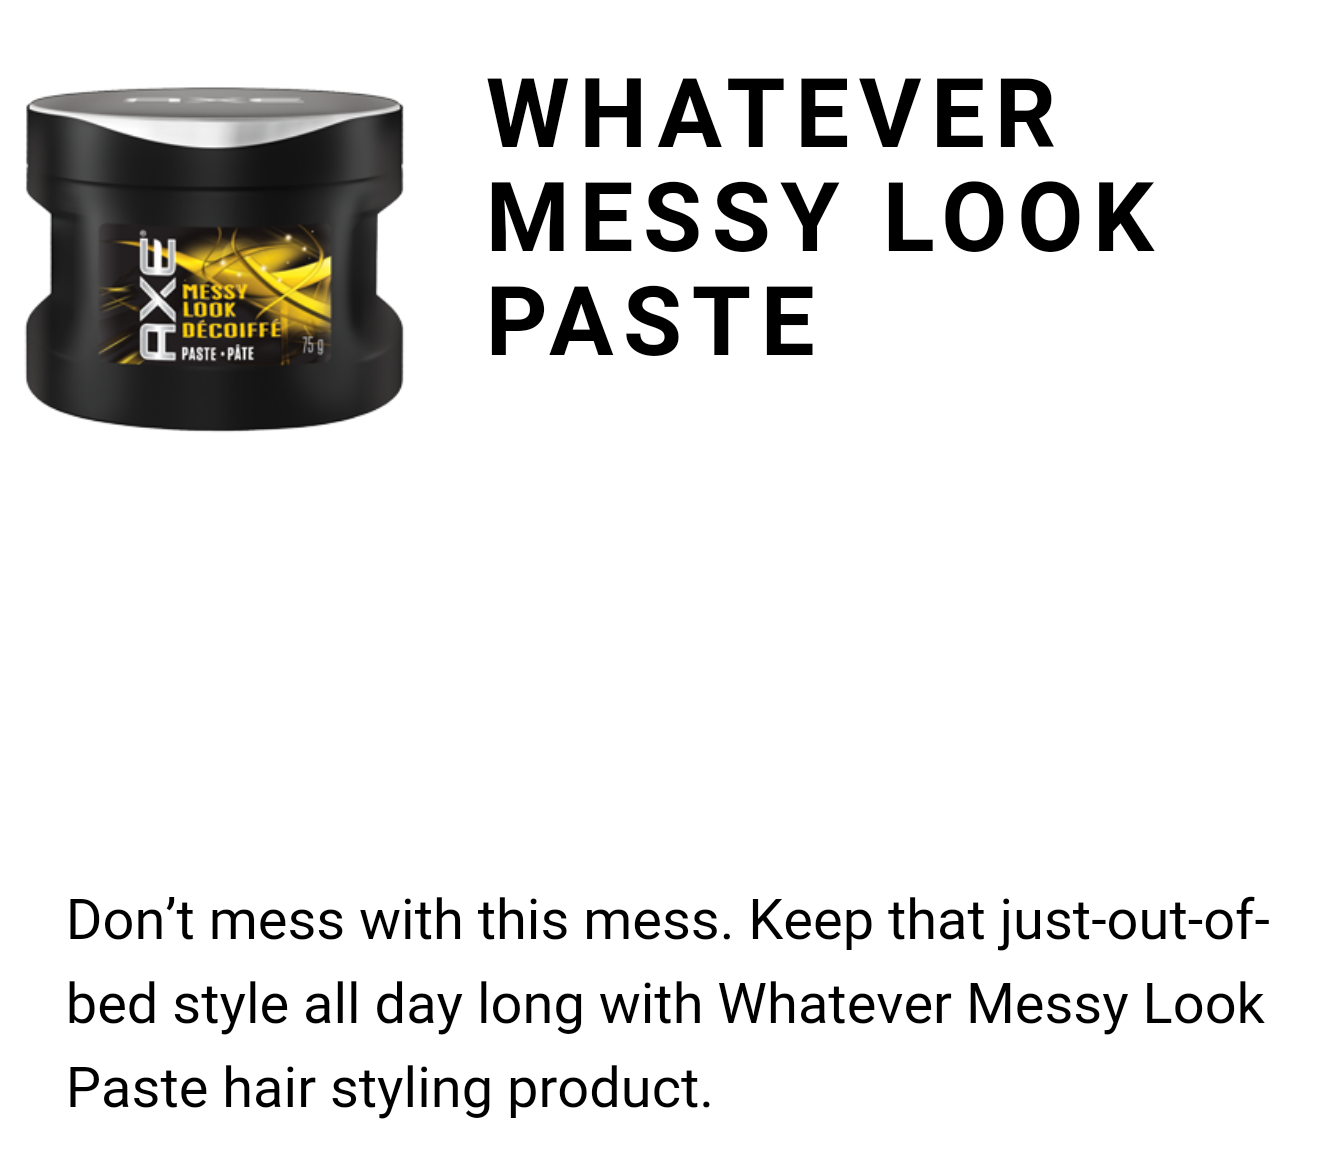 #AXEGOTSTYLE Whatever Messy Look Paste